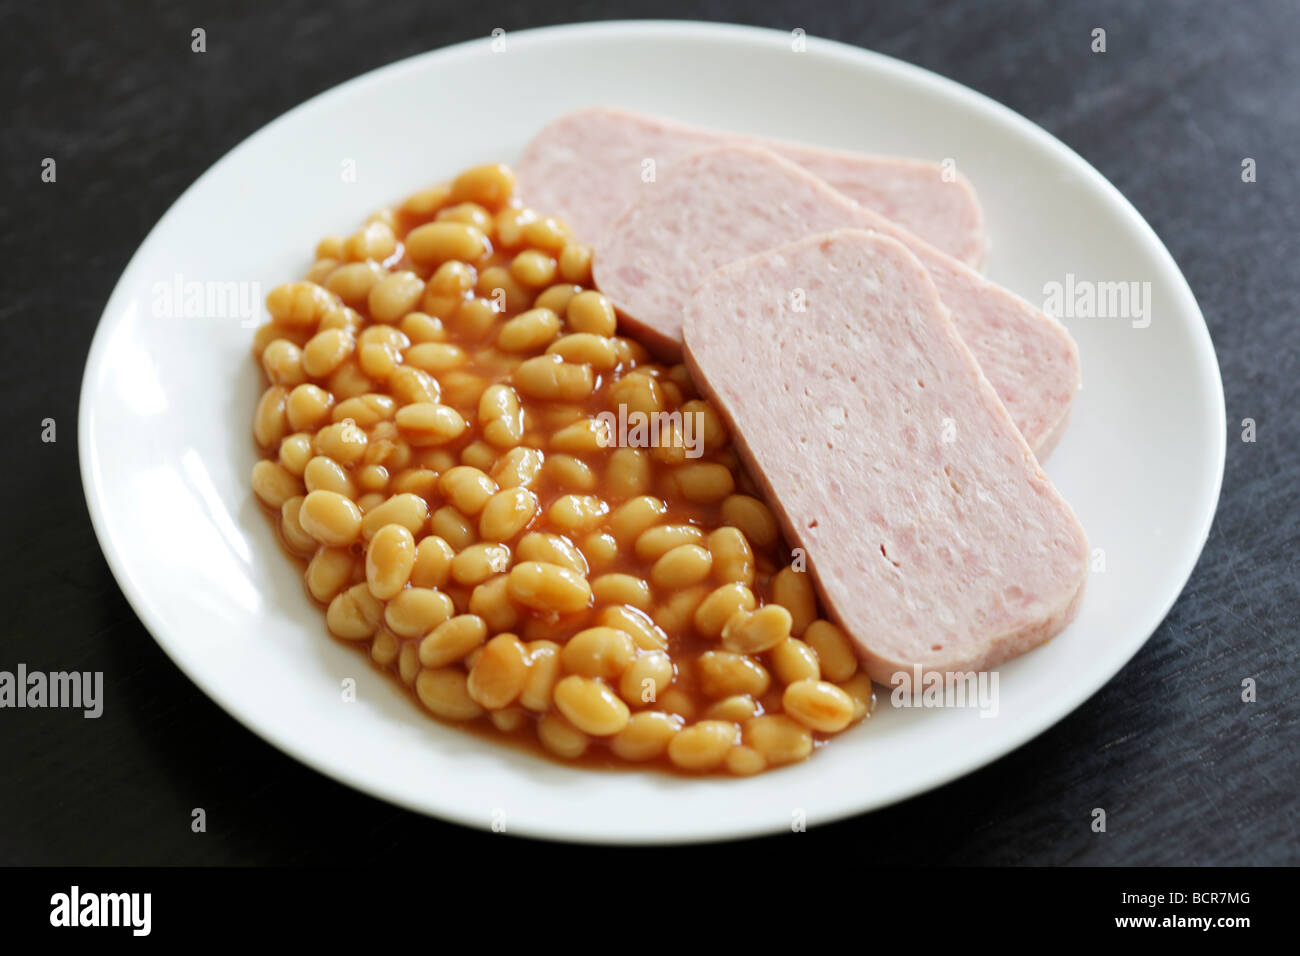 Spam with Baked Beans - Stock Image